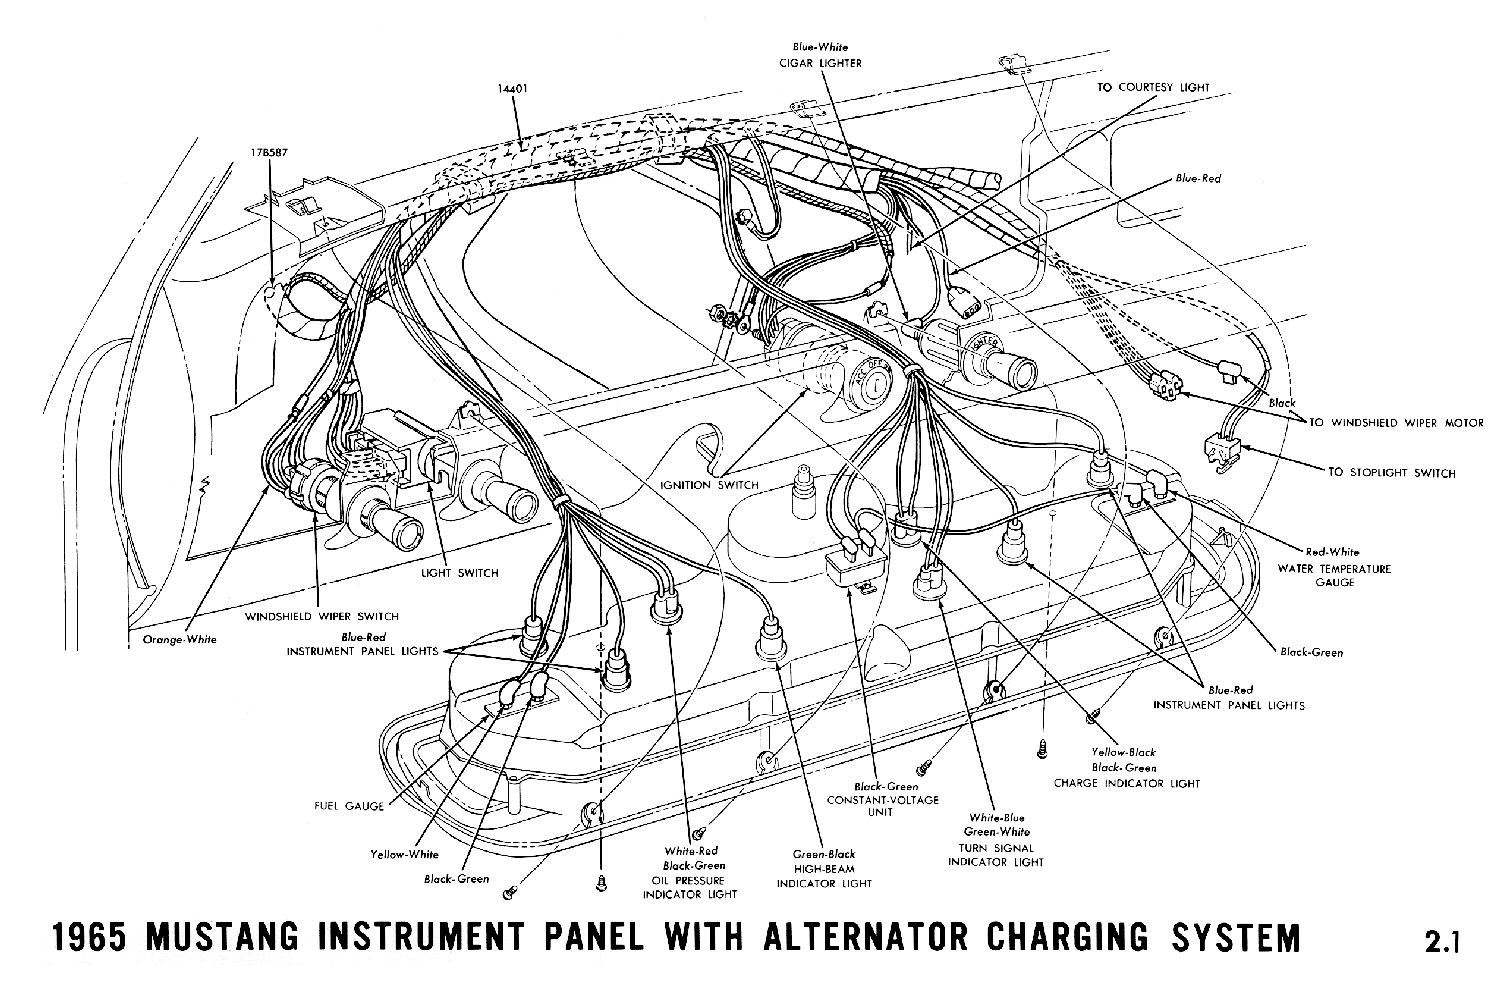 1965 Mustang Complete Wiring Diagram Schematics Diagrams 1966 Barracuda Dash Schematic Average Joe Restoration Rh Averagejoerestoration Com Color